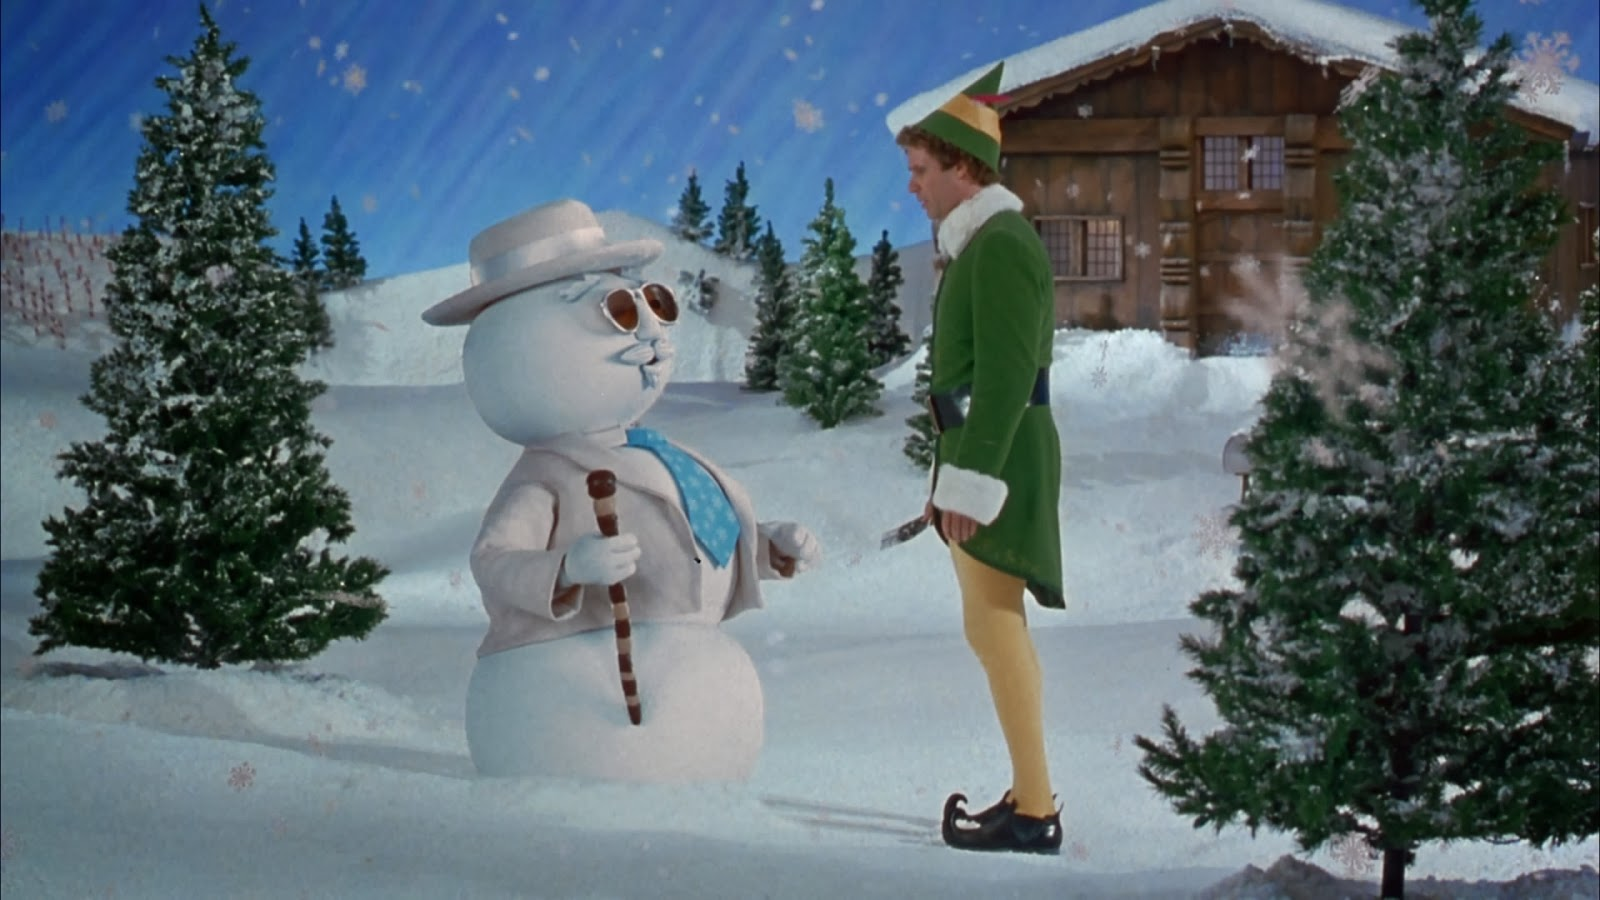 'Elf' Movie to Get Stop-Motion Special with Jim Parsons ...